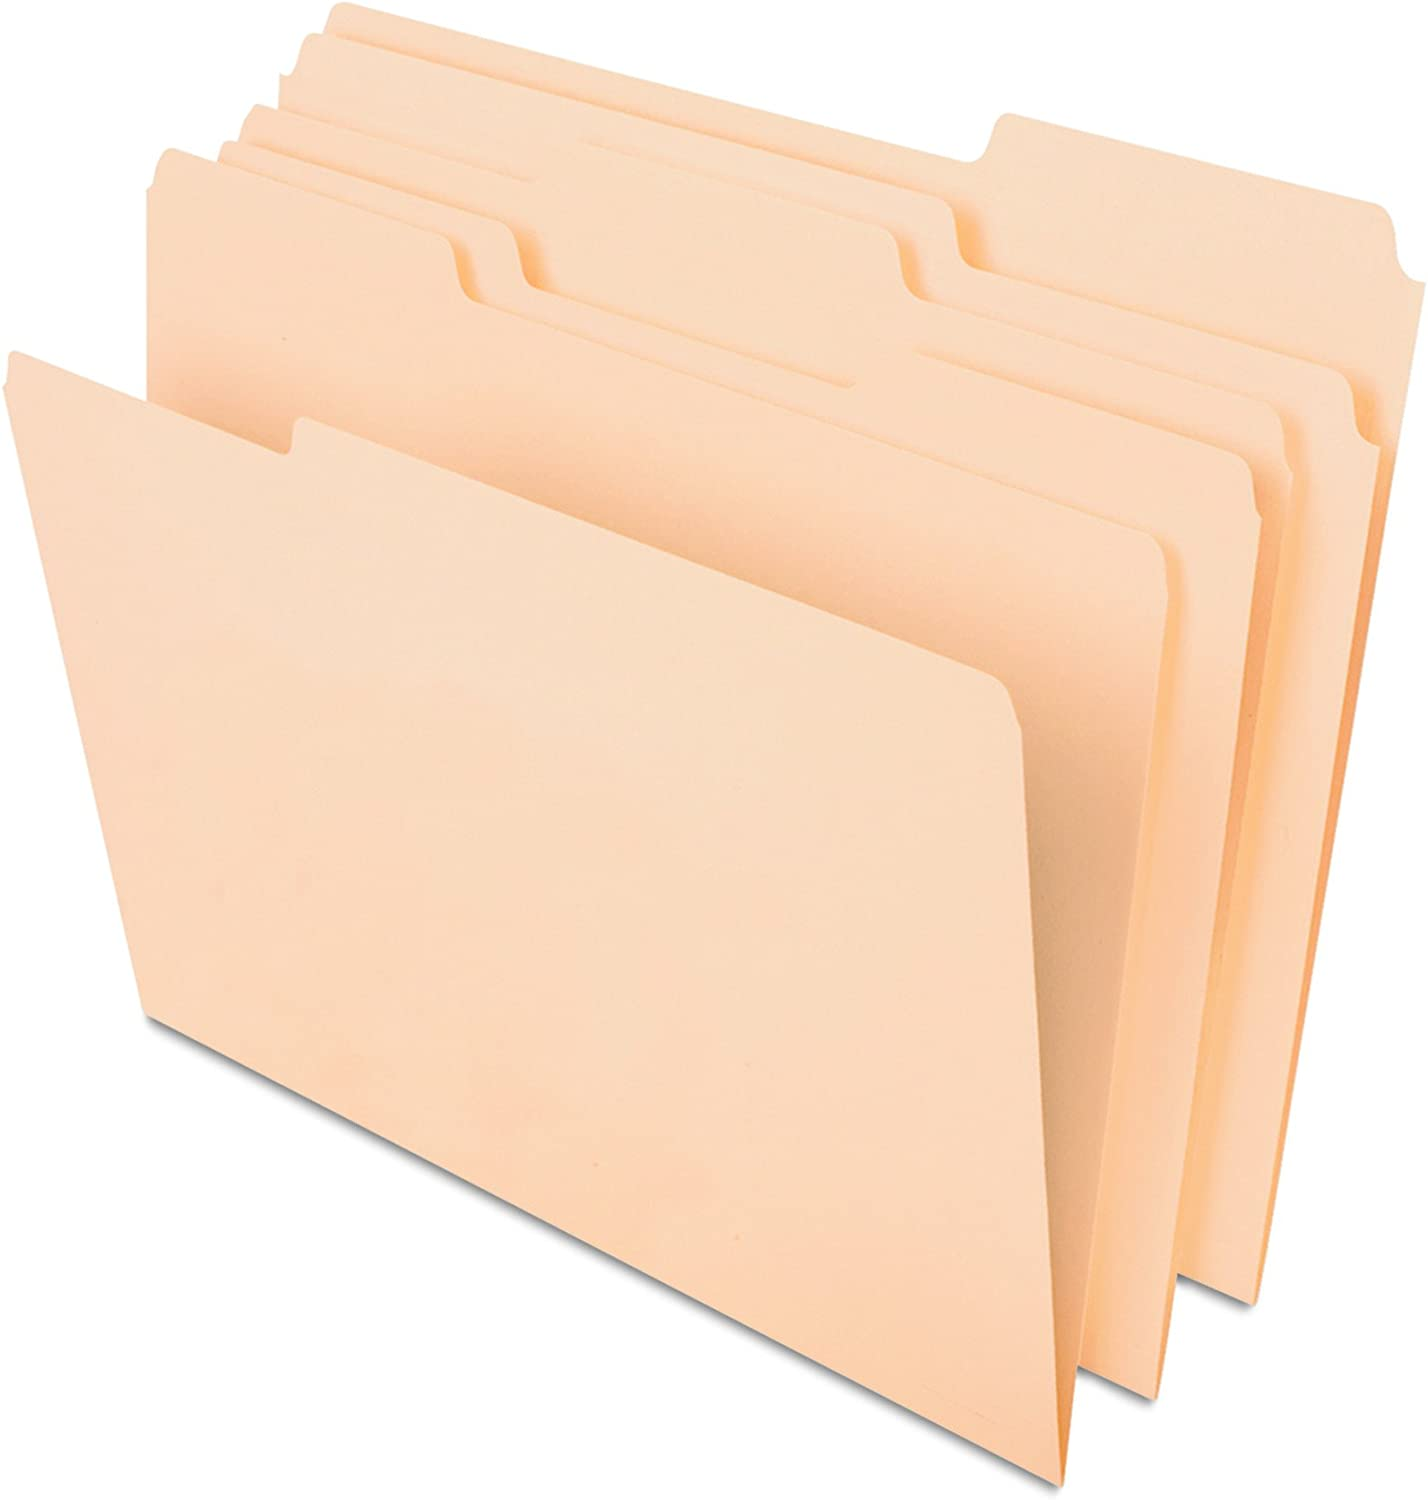 Pendaflex CutLess File Folders with Softer Paper Edges, Letter Size, Manila, 1/3 Cut Tabs in Assorted Positions, 100 Per Box (48420)